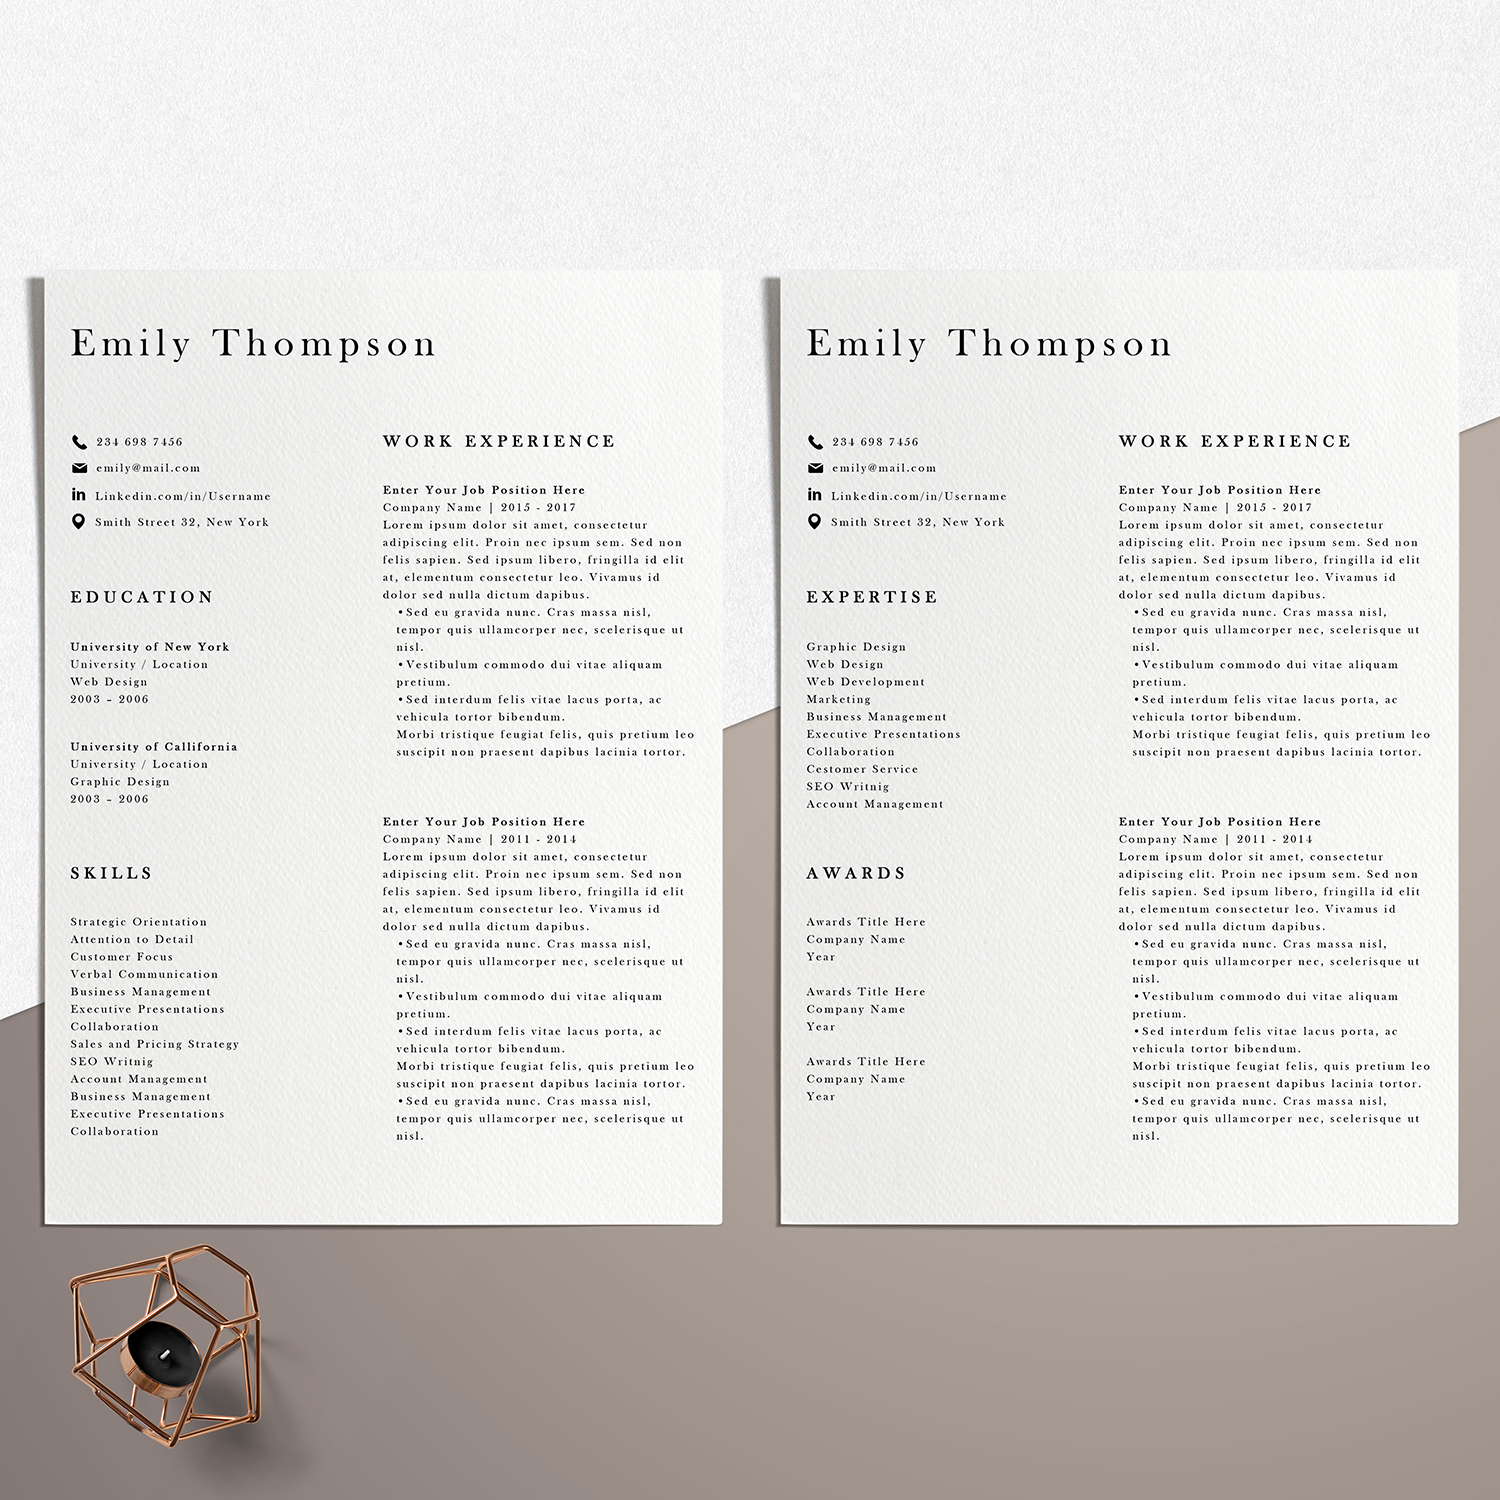 Resume Template | Photoshop CV Template - Emily example image 5